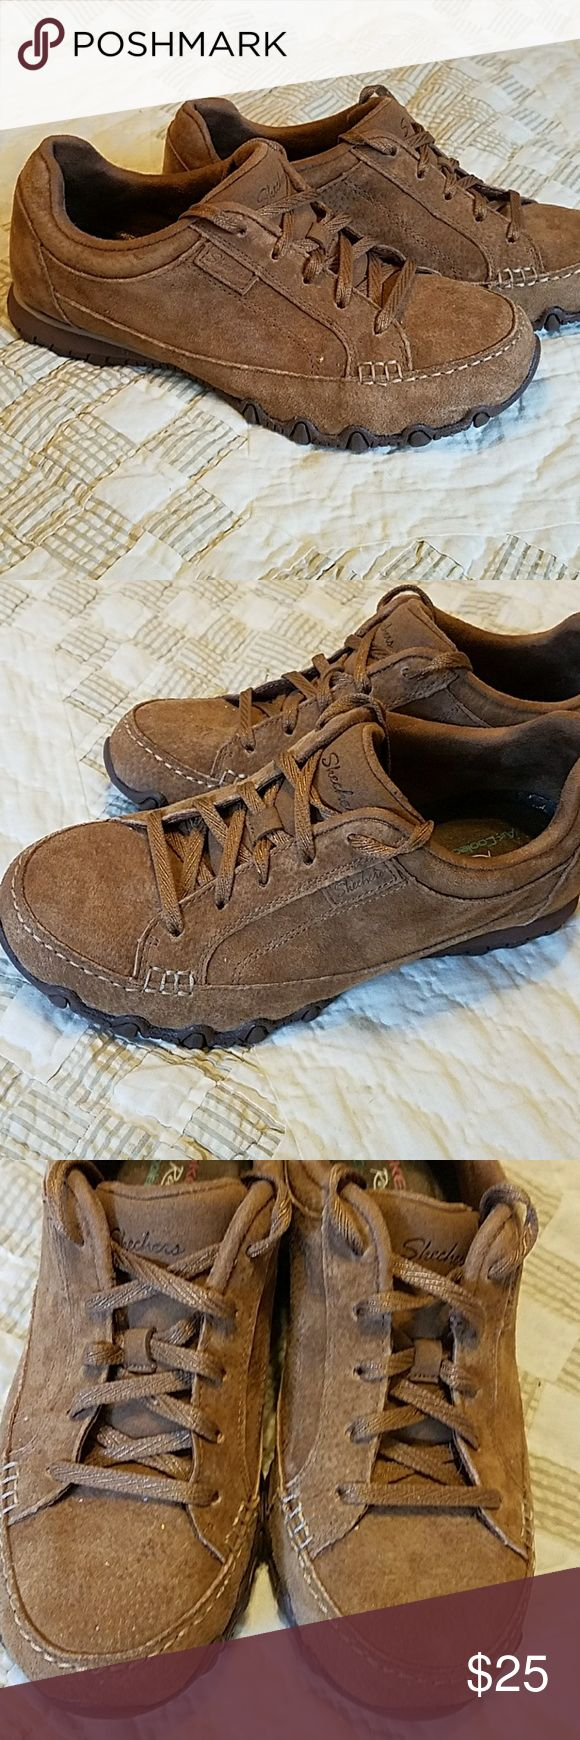 Skechers ladies casual in size 6.5 Ladies Skechers in size 6.5. These were worn by my daughter only a few times and are in EXCELLENT shape. Plenty of life left, color is light brown leather. Skechers Shoes Athletic Shoes